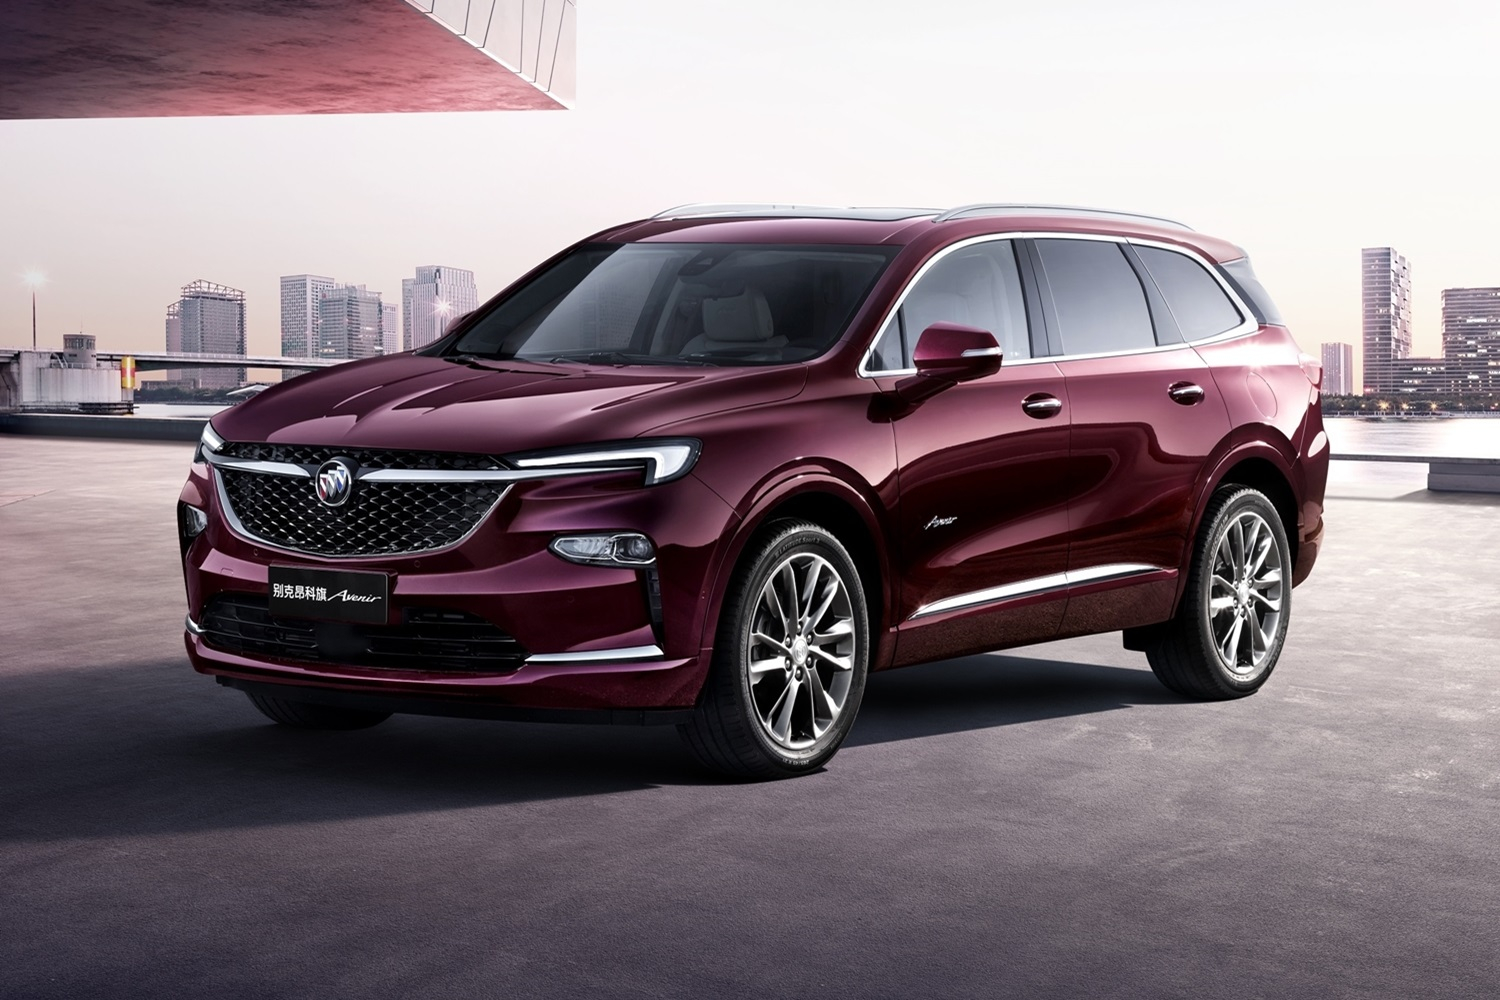 Gm Shows All-New China-Spec Buick Enclave Avenir | Gm Authority 2022 Buick Enclave Specs, Seat Covers, Towing Capacity